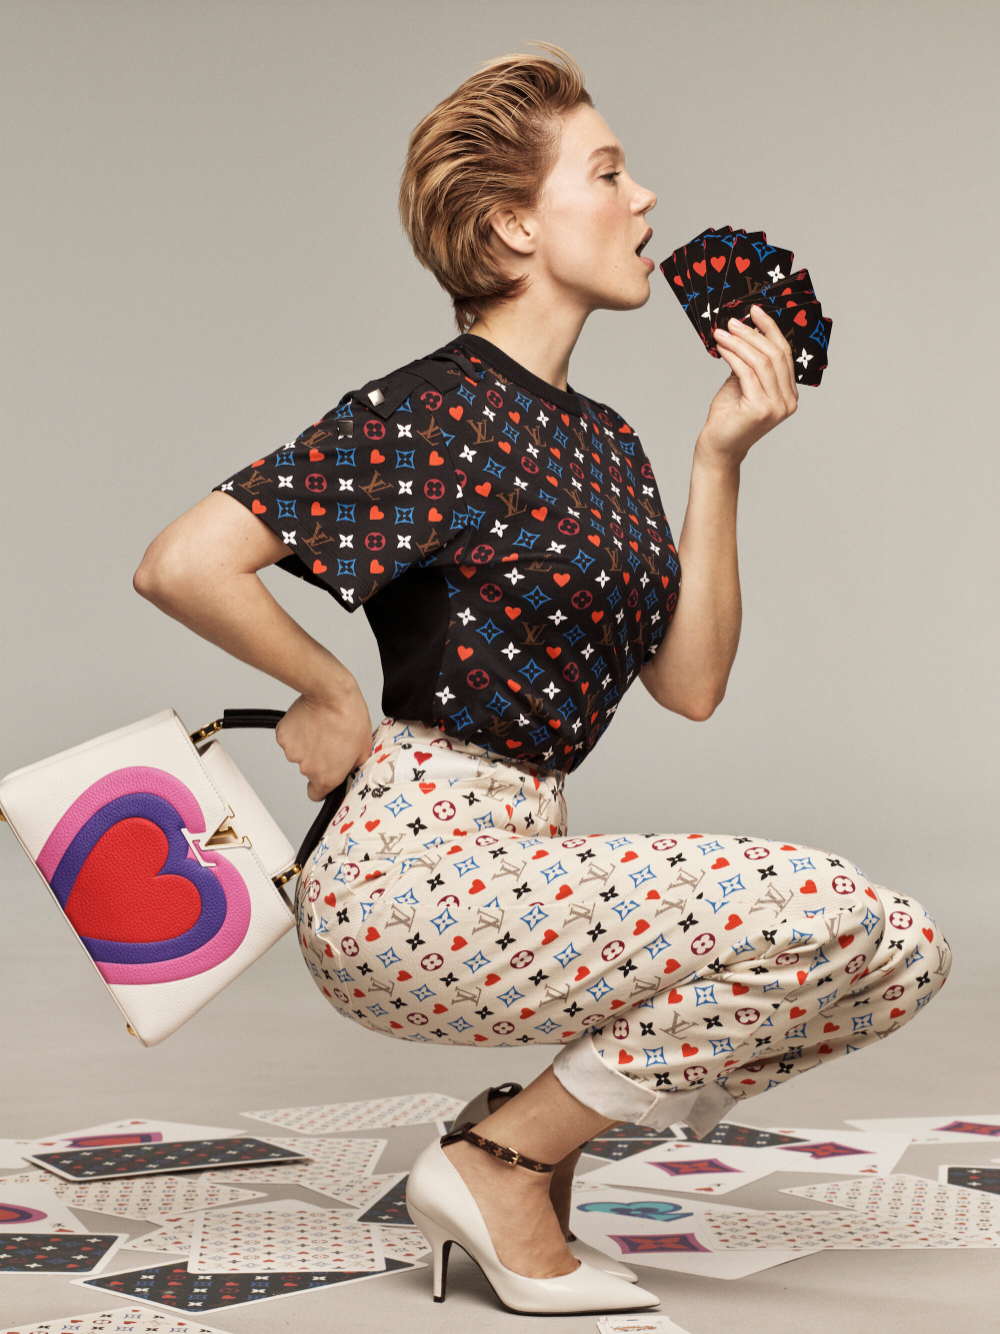 Lea Seydoux in 'Game On' for Louis Vuitton Cruise